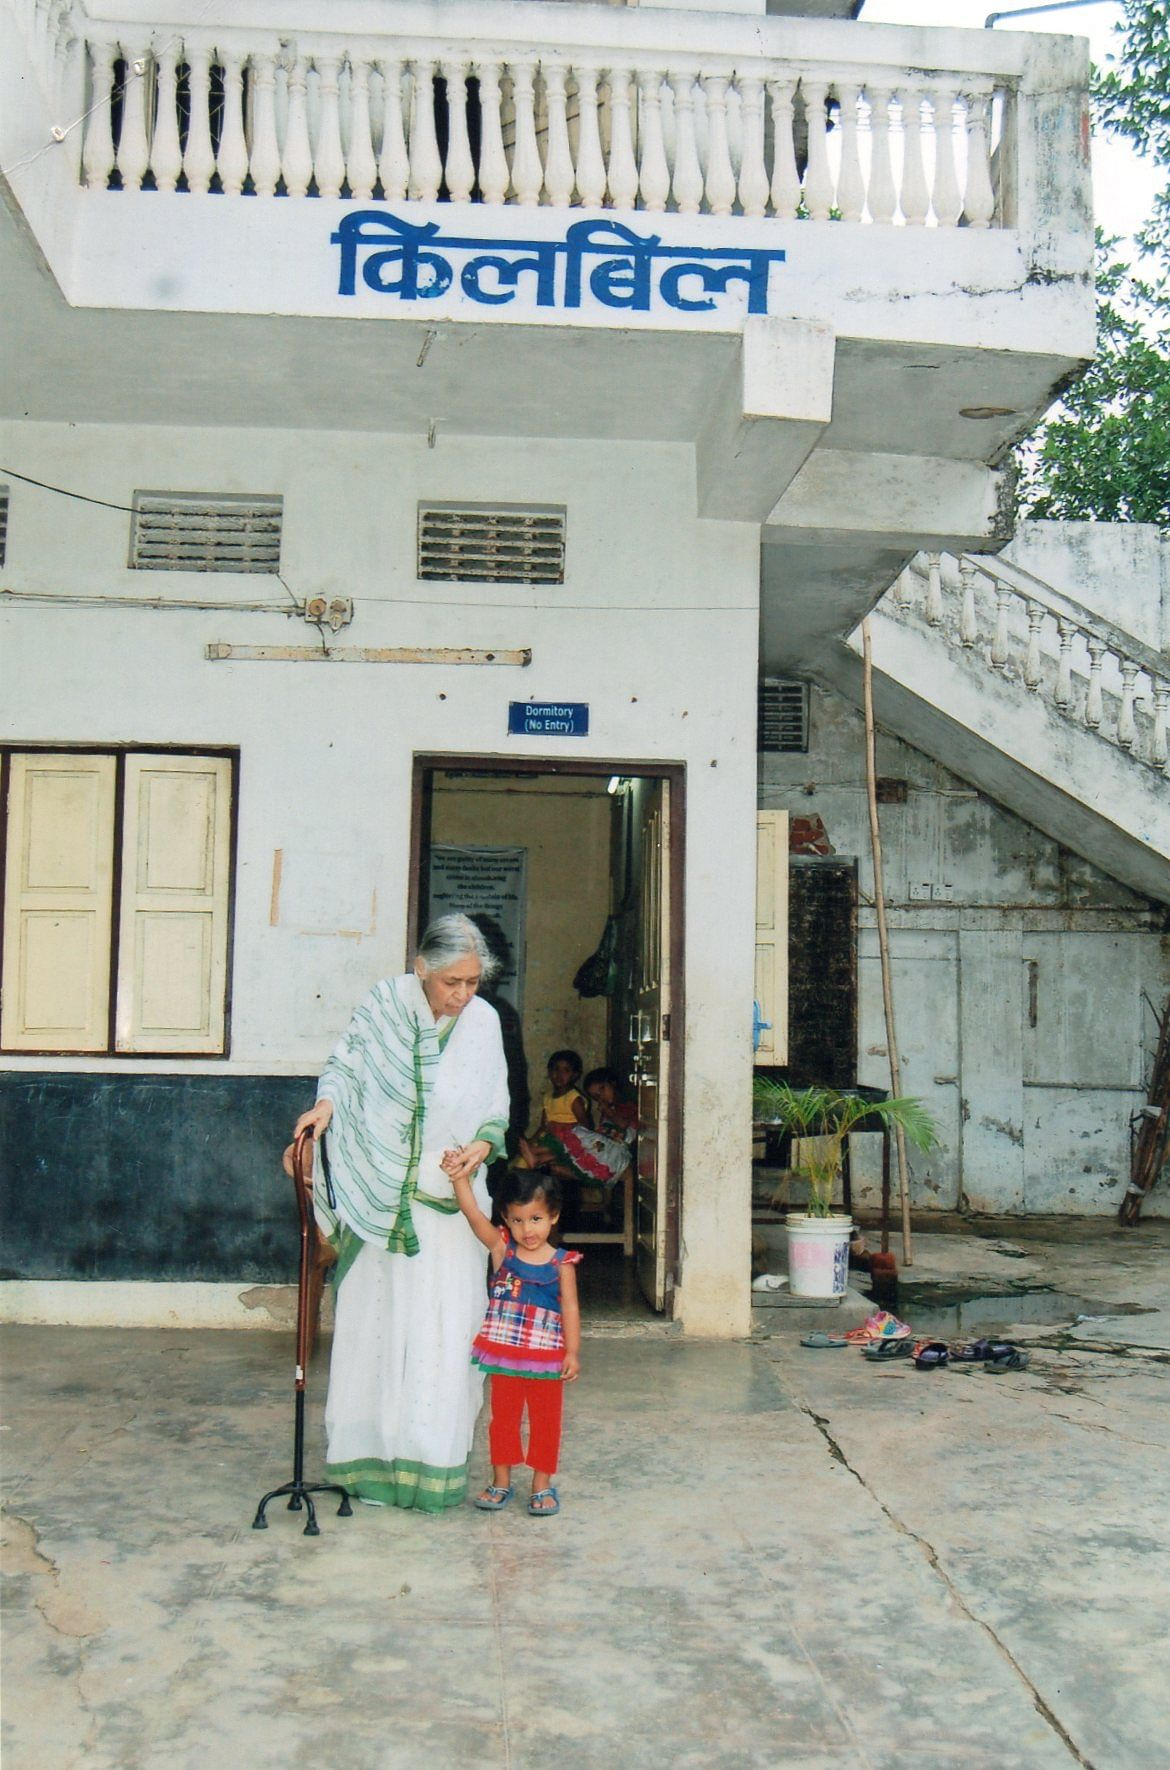 Prabhavati Muthal with a 1.5-year-old child who is waiting to be made free for adoption by CWC